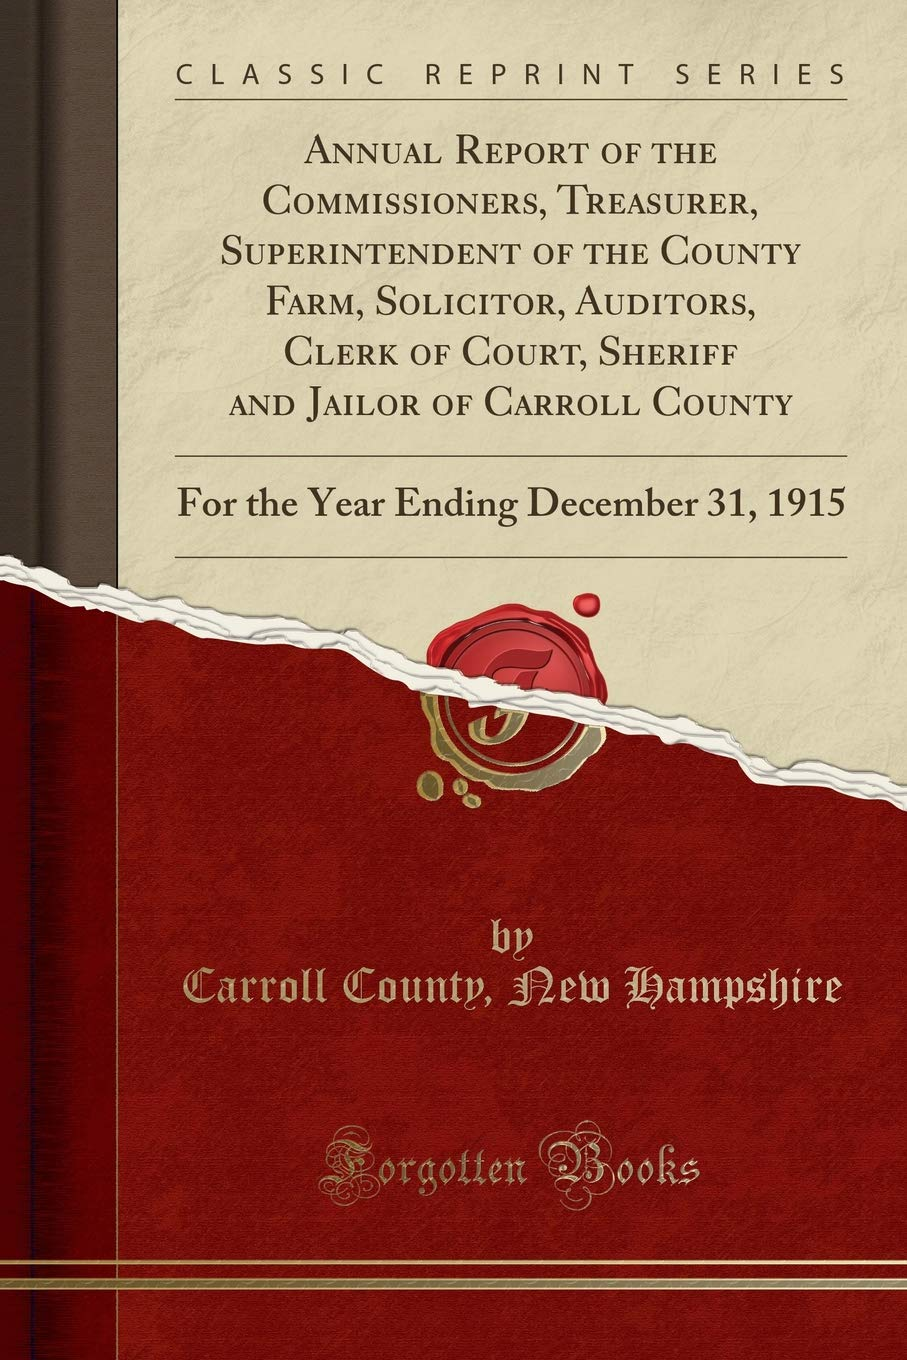 Annual Report of the Commissioners, Treasurer, Superintendent of the County Farm, Solicitor, Auditors, Clerk of Court, Sheriff and Jailor of Carroll ... Ending December 31, 1915 (Classic Reprint) ebook